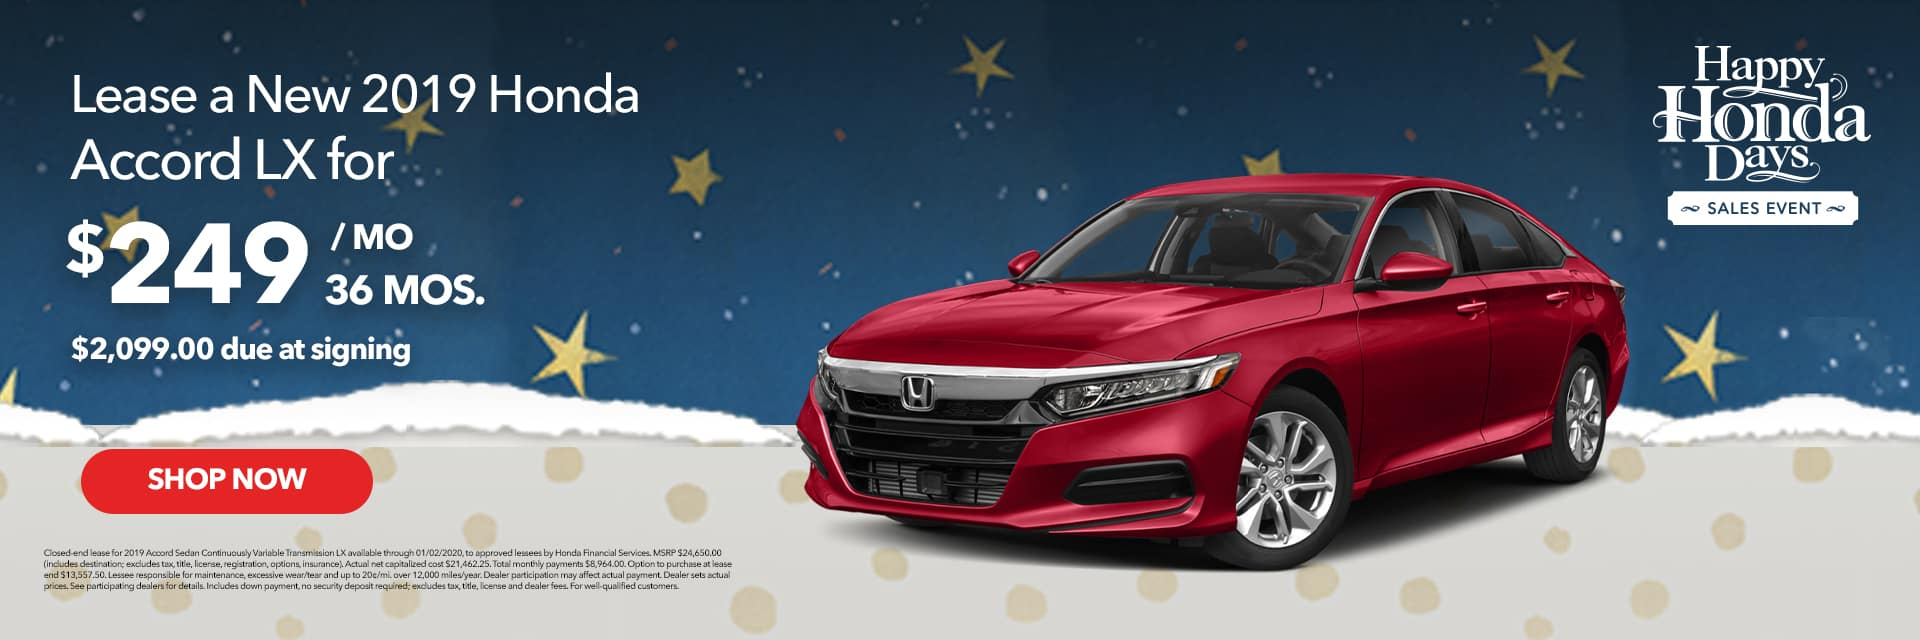 Happy Honda Days Accord Lease Offer